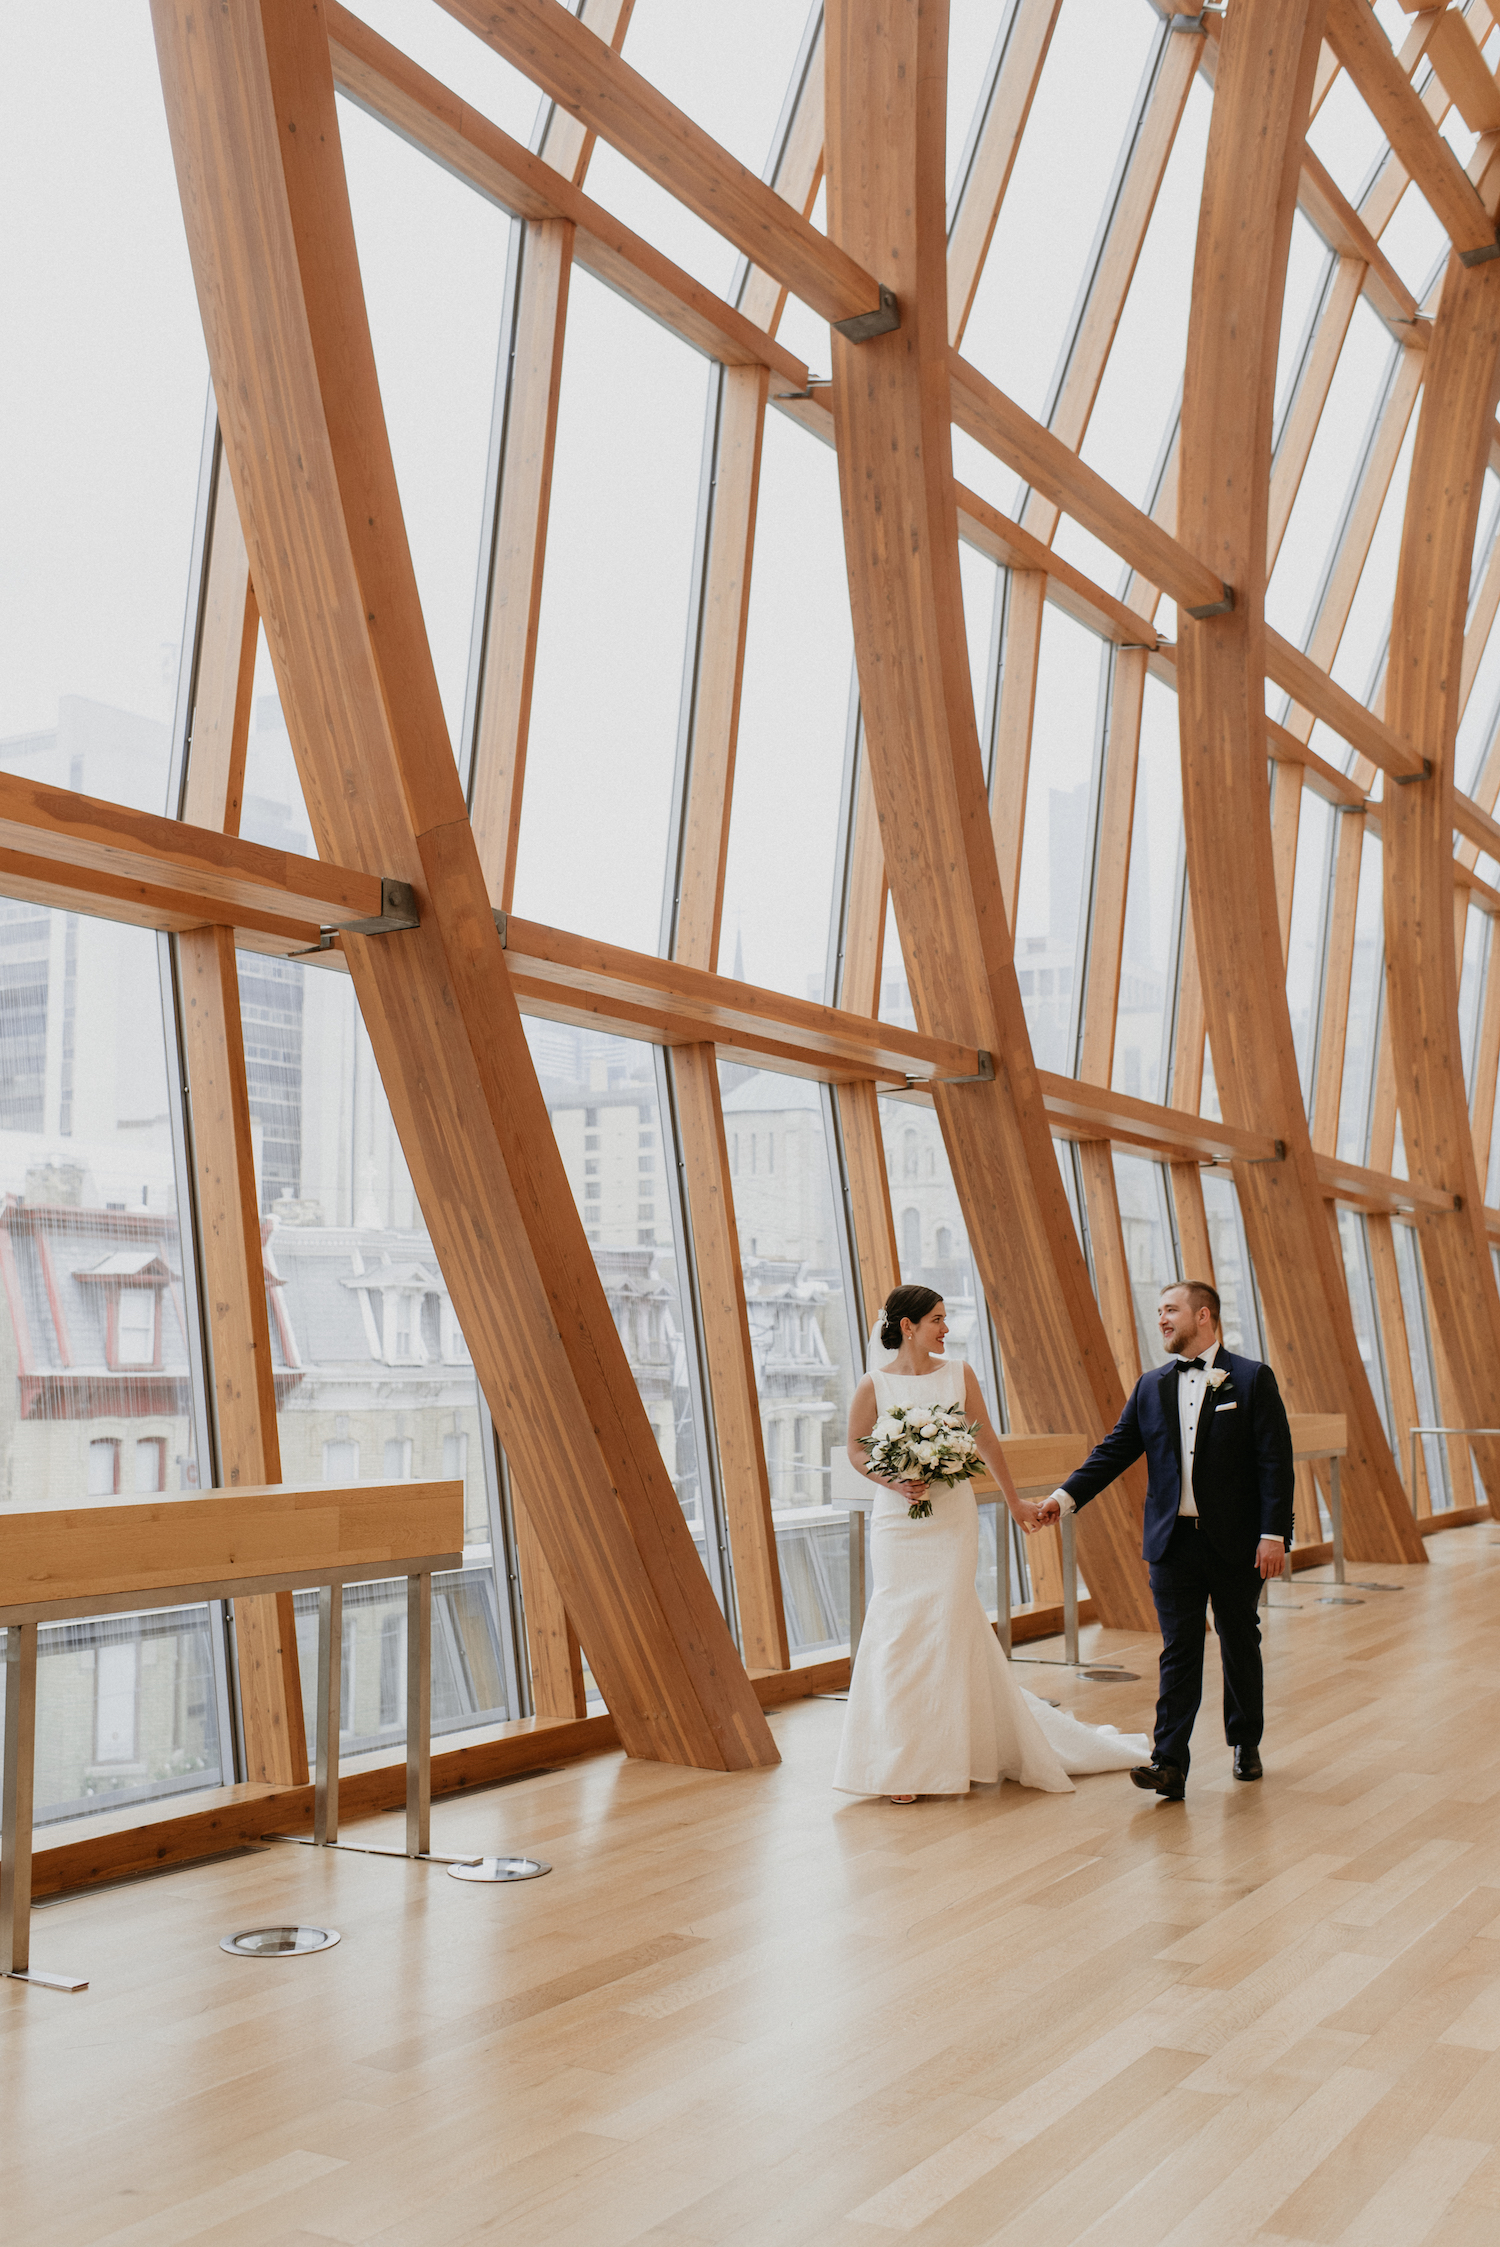 ago wedding toronto anna alex